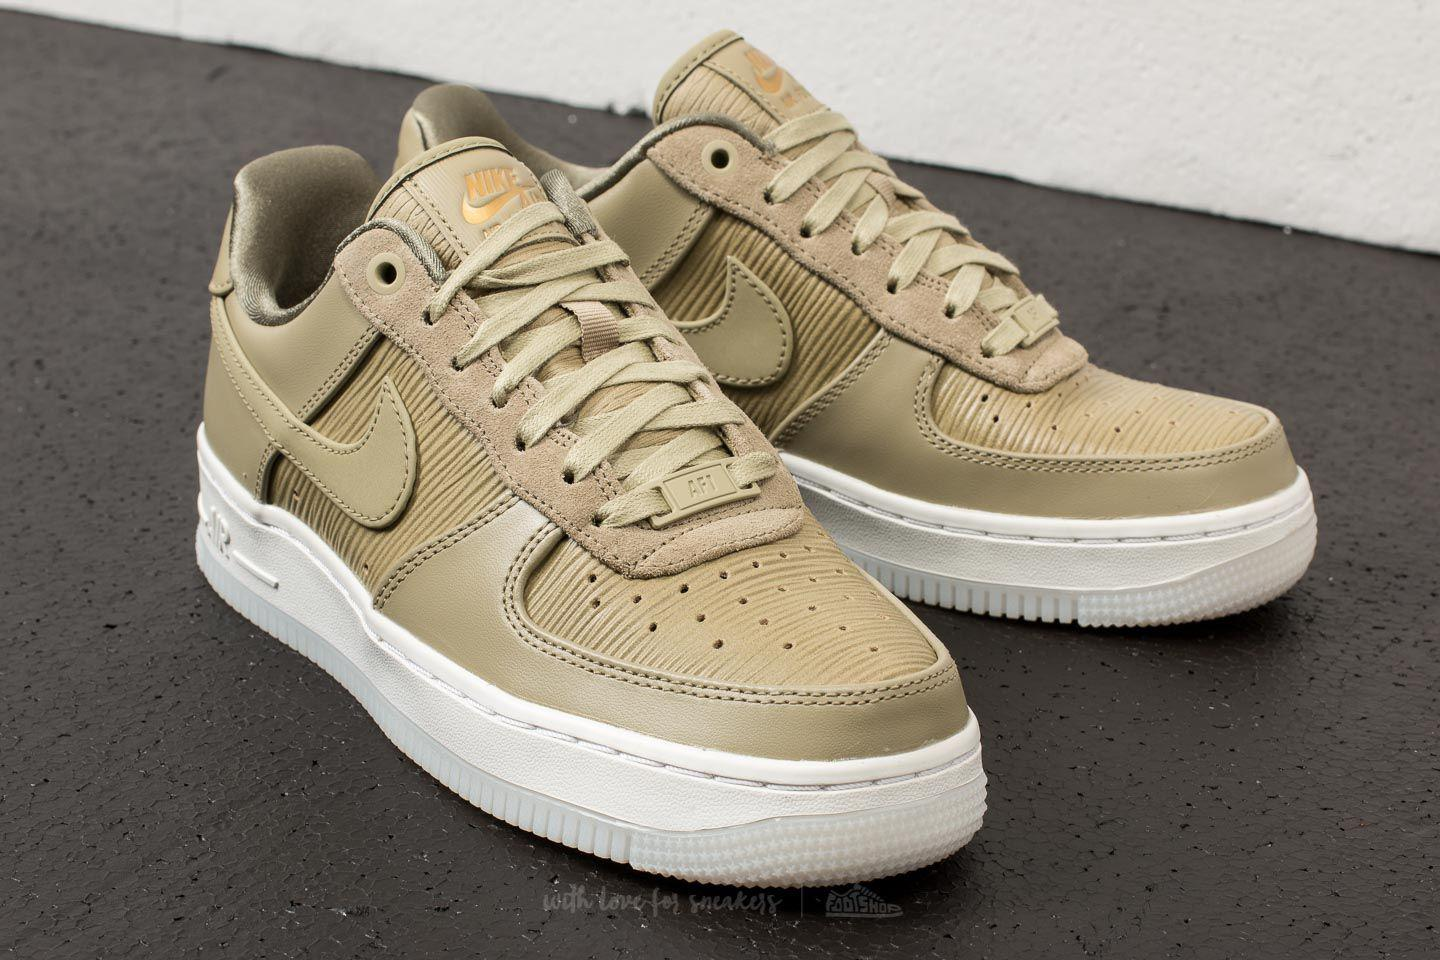 Wmns Air Force 1 '07 Lx Neutral Olive